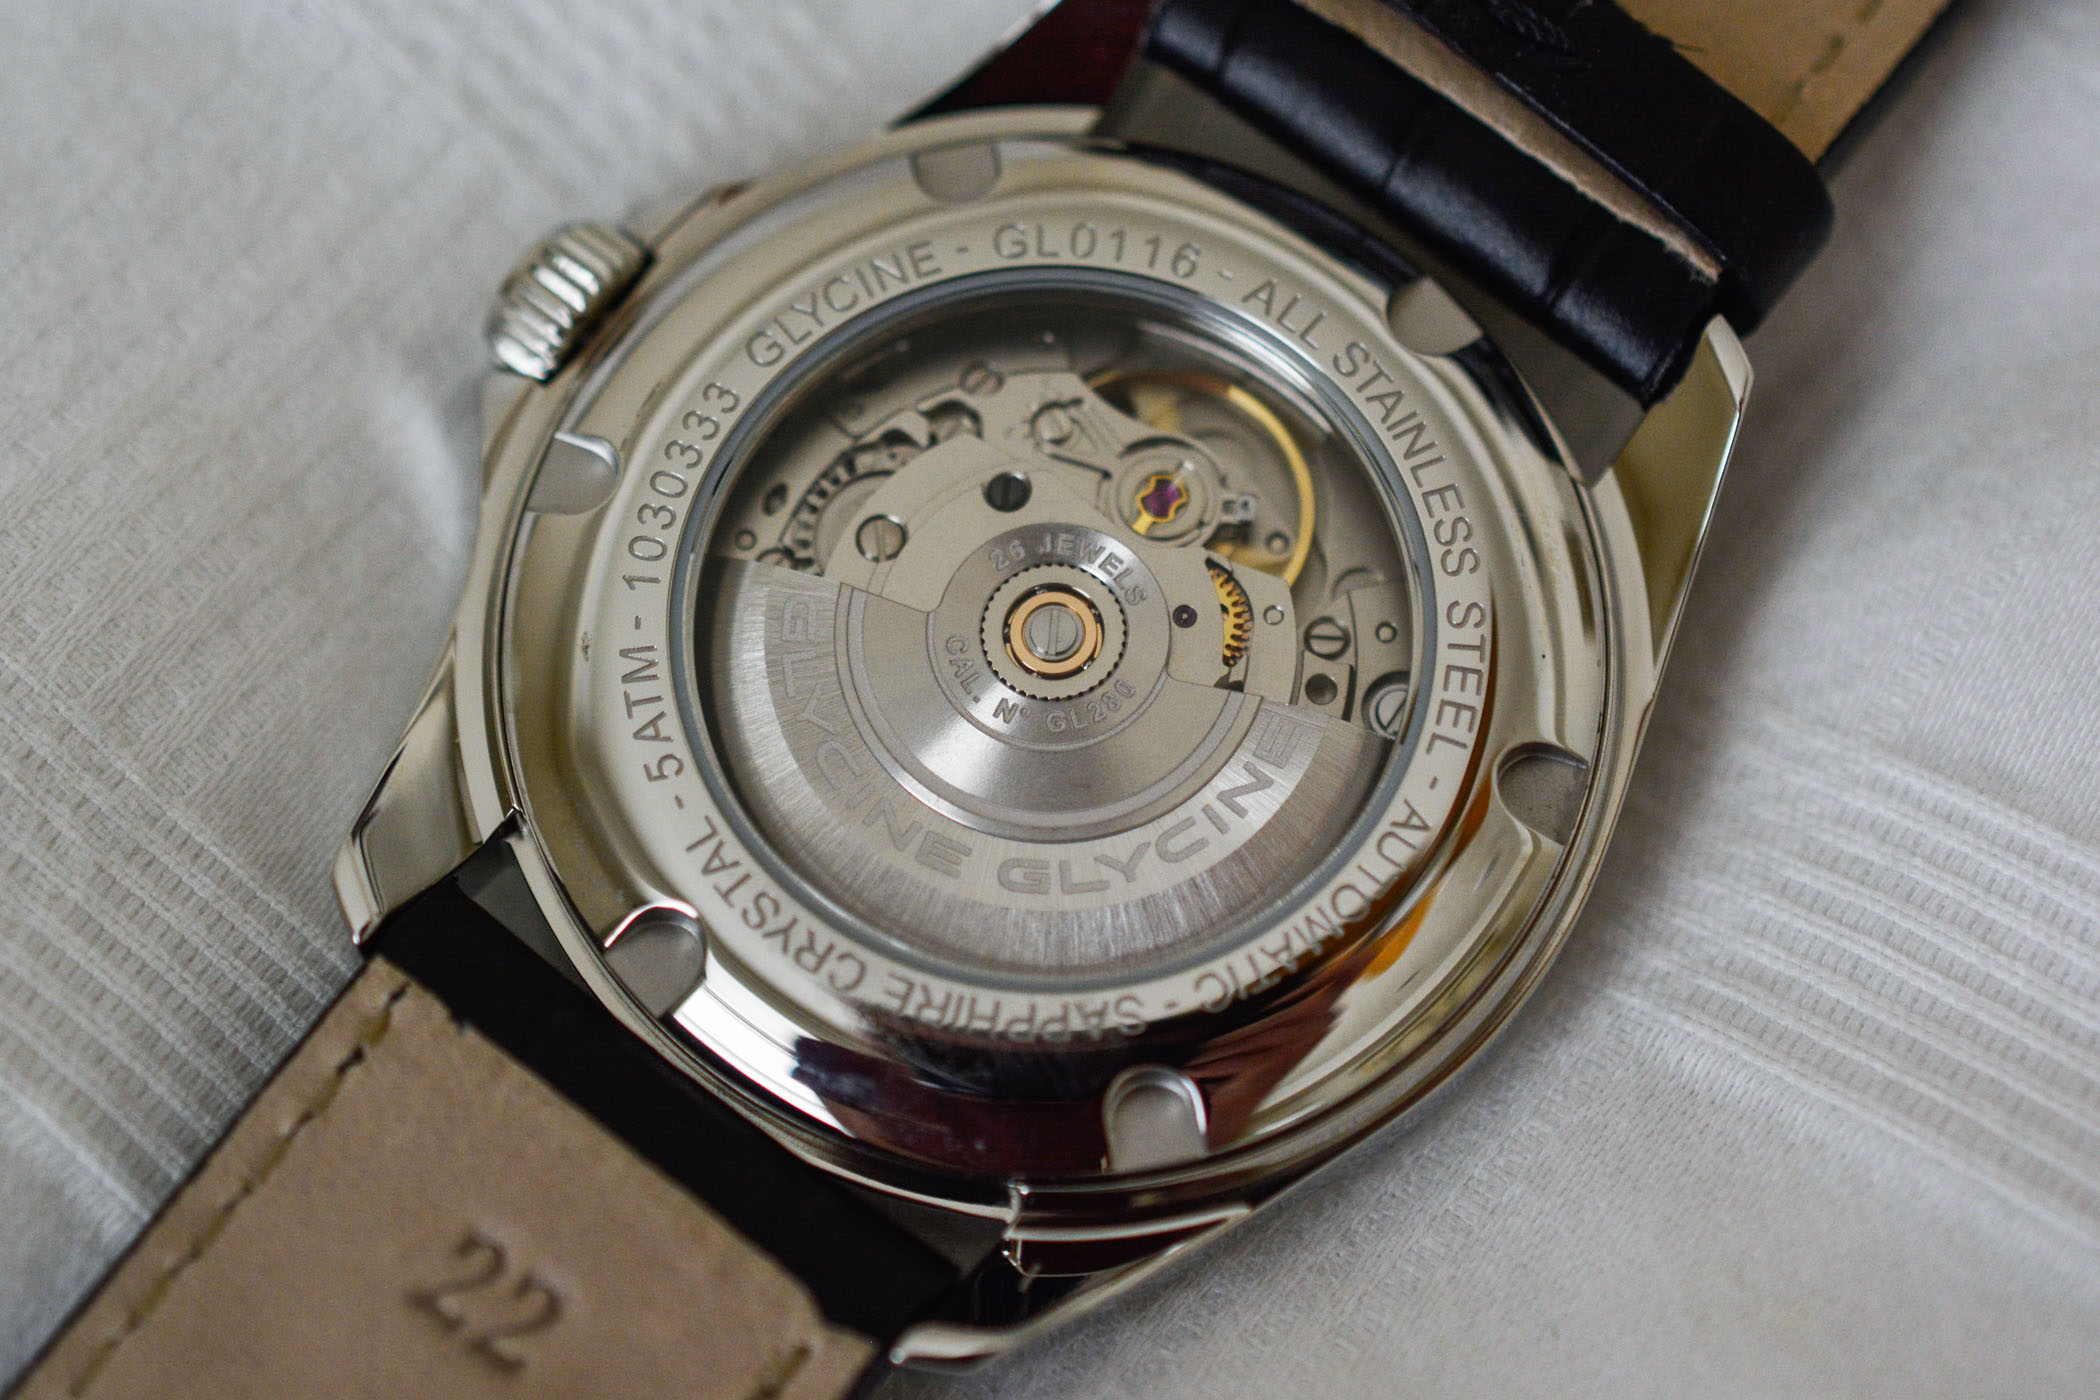 Glycine Combat 6 Classic Moonphase - Value Proposition Review - 11